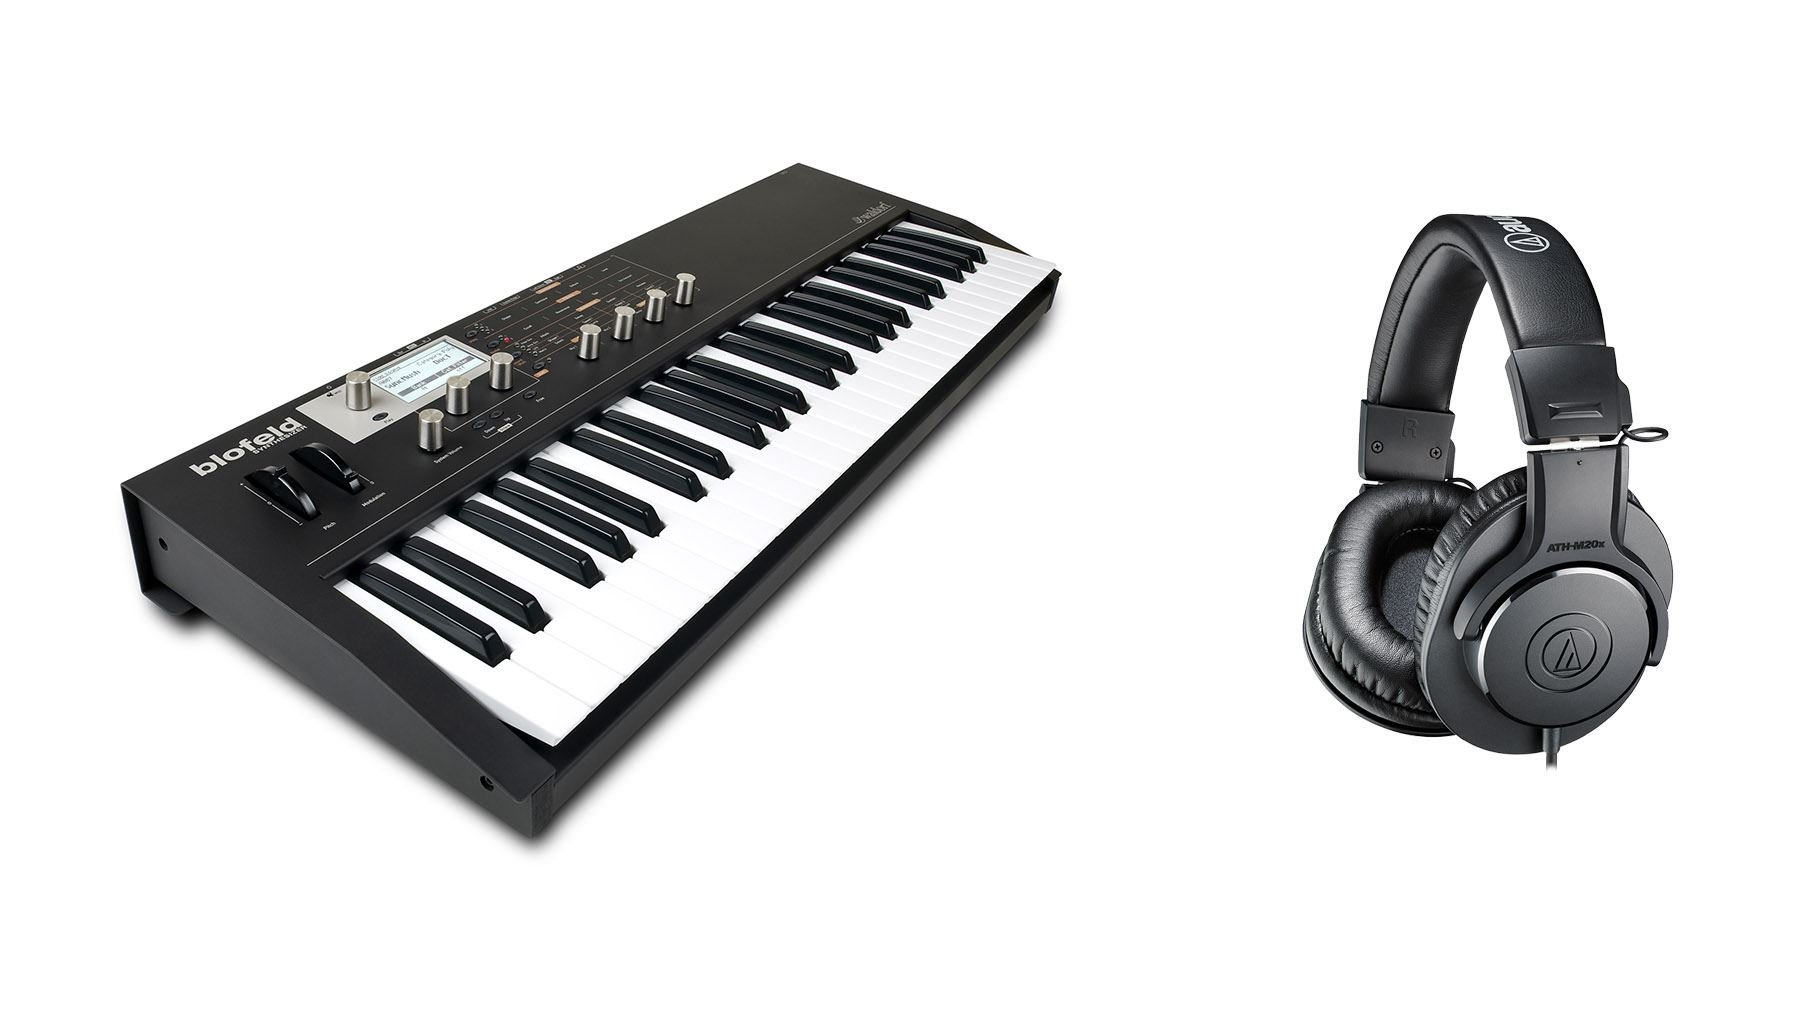 Waldorf Black Blofeld Synthesizer Keyboard Bundle with Audio-Technica ATH-M20x Headphones (2 Items)